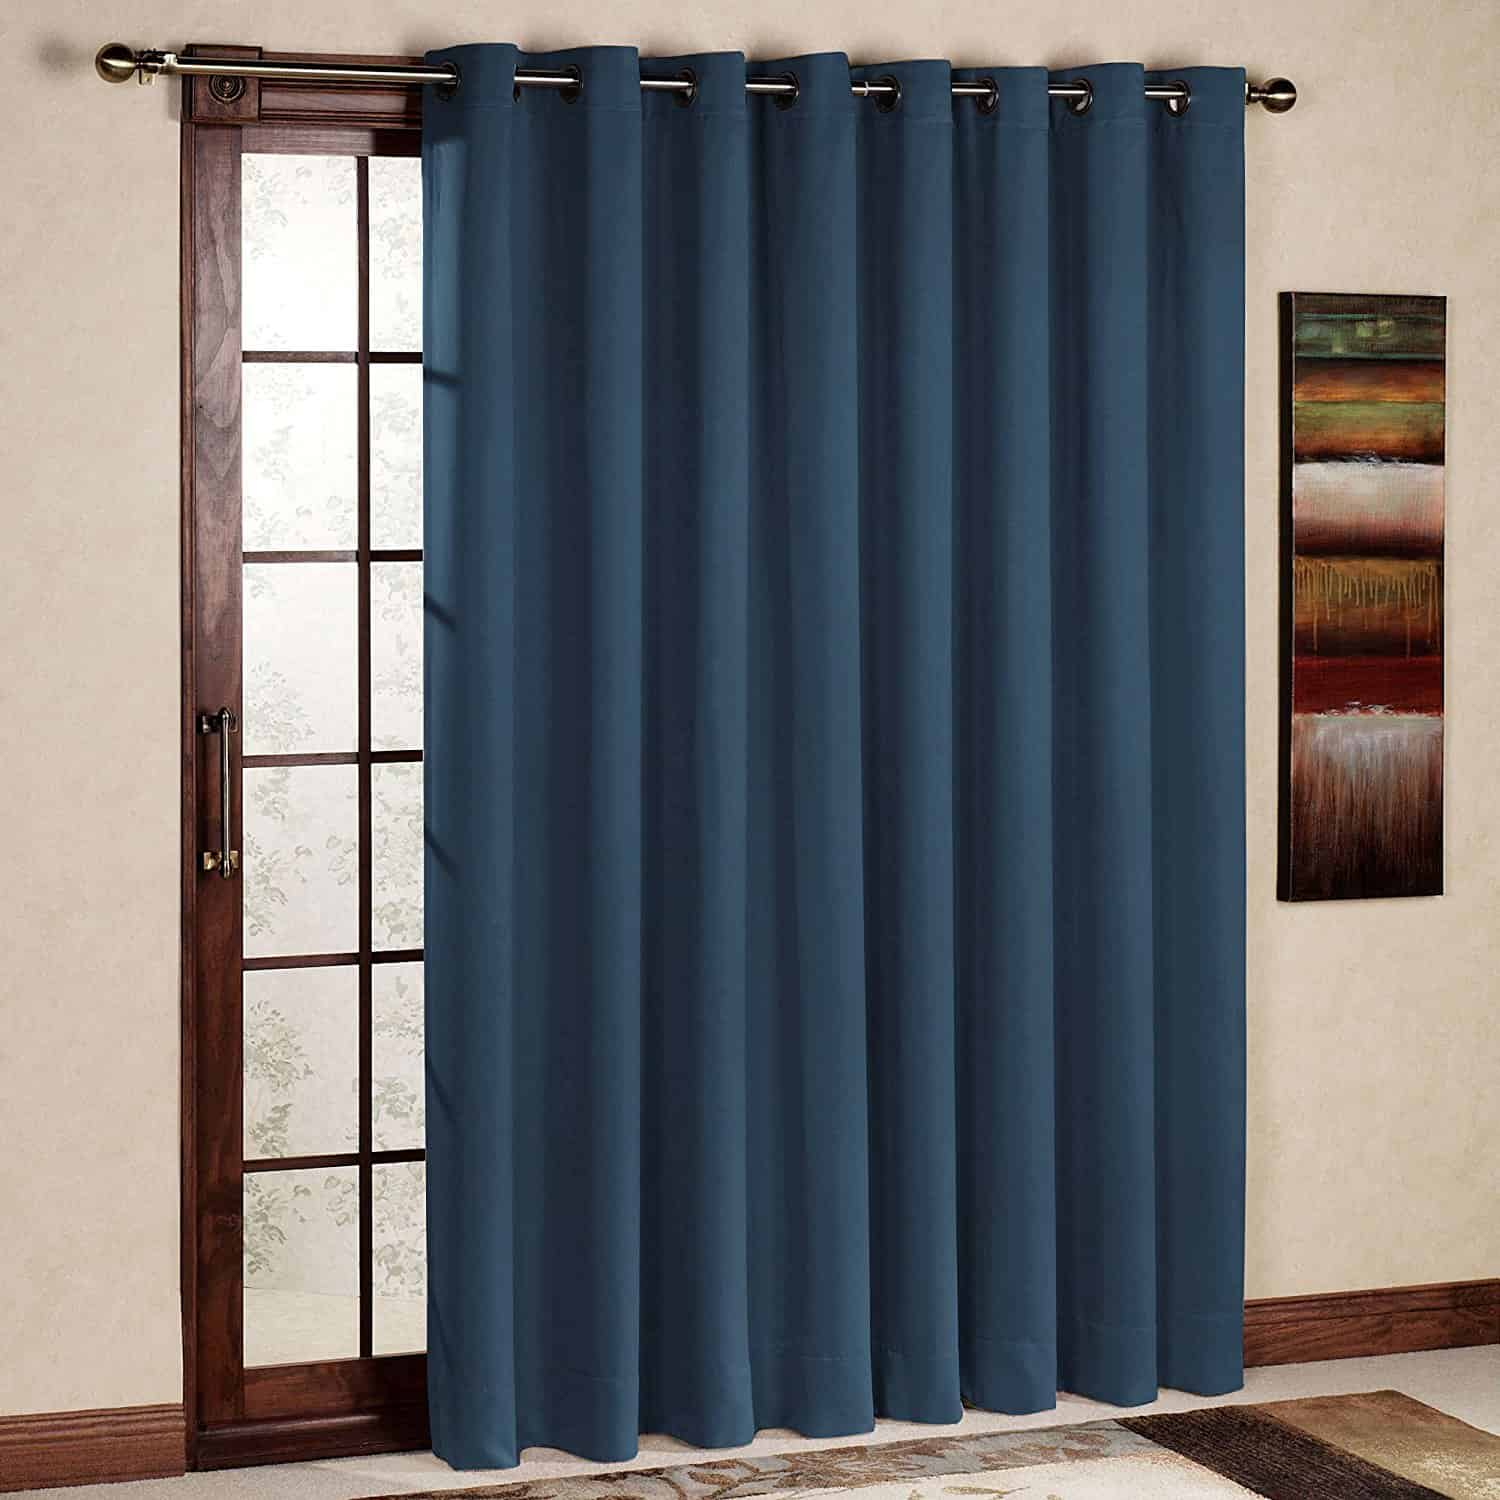 Kitchen Door Curtains Window Treatments For Sliding Glass Doors Ideas Tips